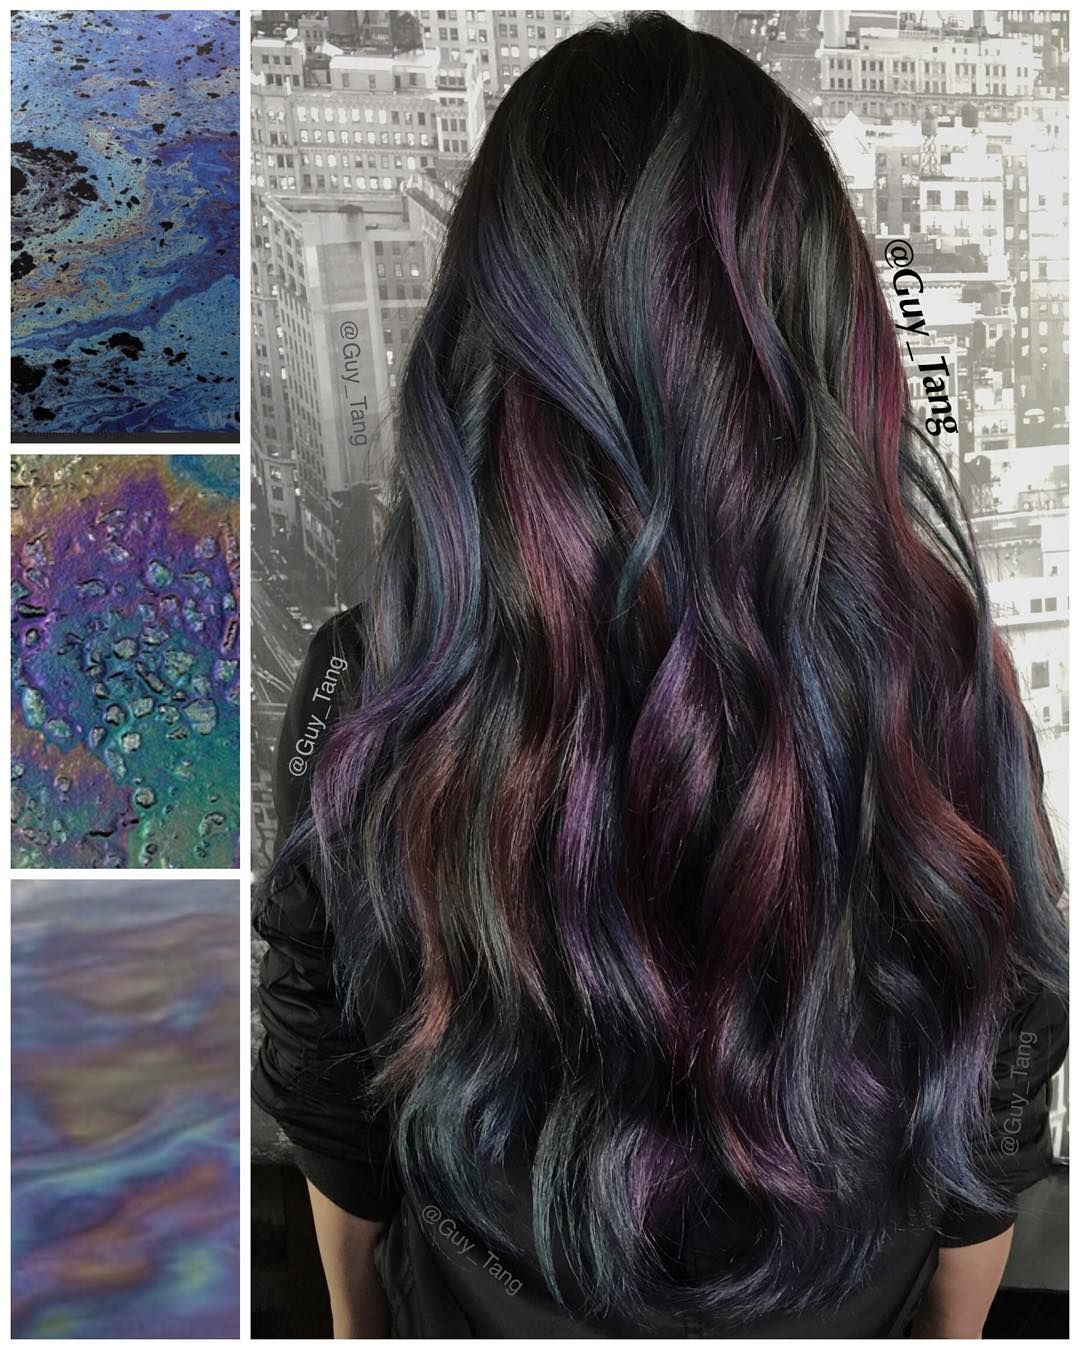 """edc59b4c1db """" michellephan new color debut ! She wanted something similar to oil slick  and galactic! So we created this interpretation with less gold!"""""""